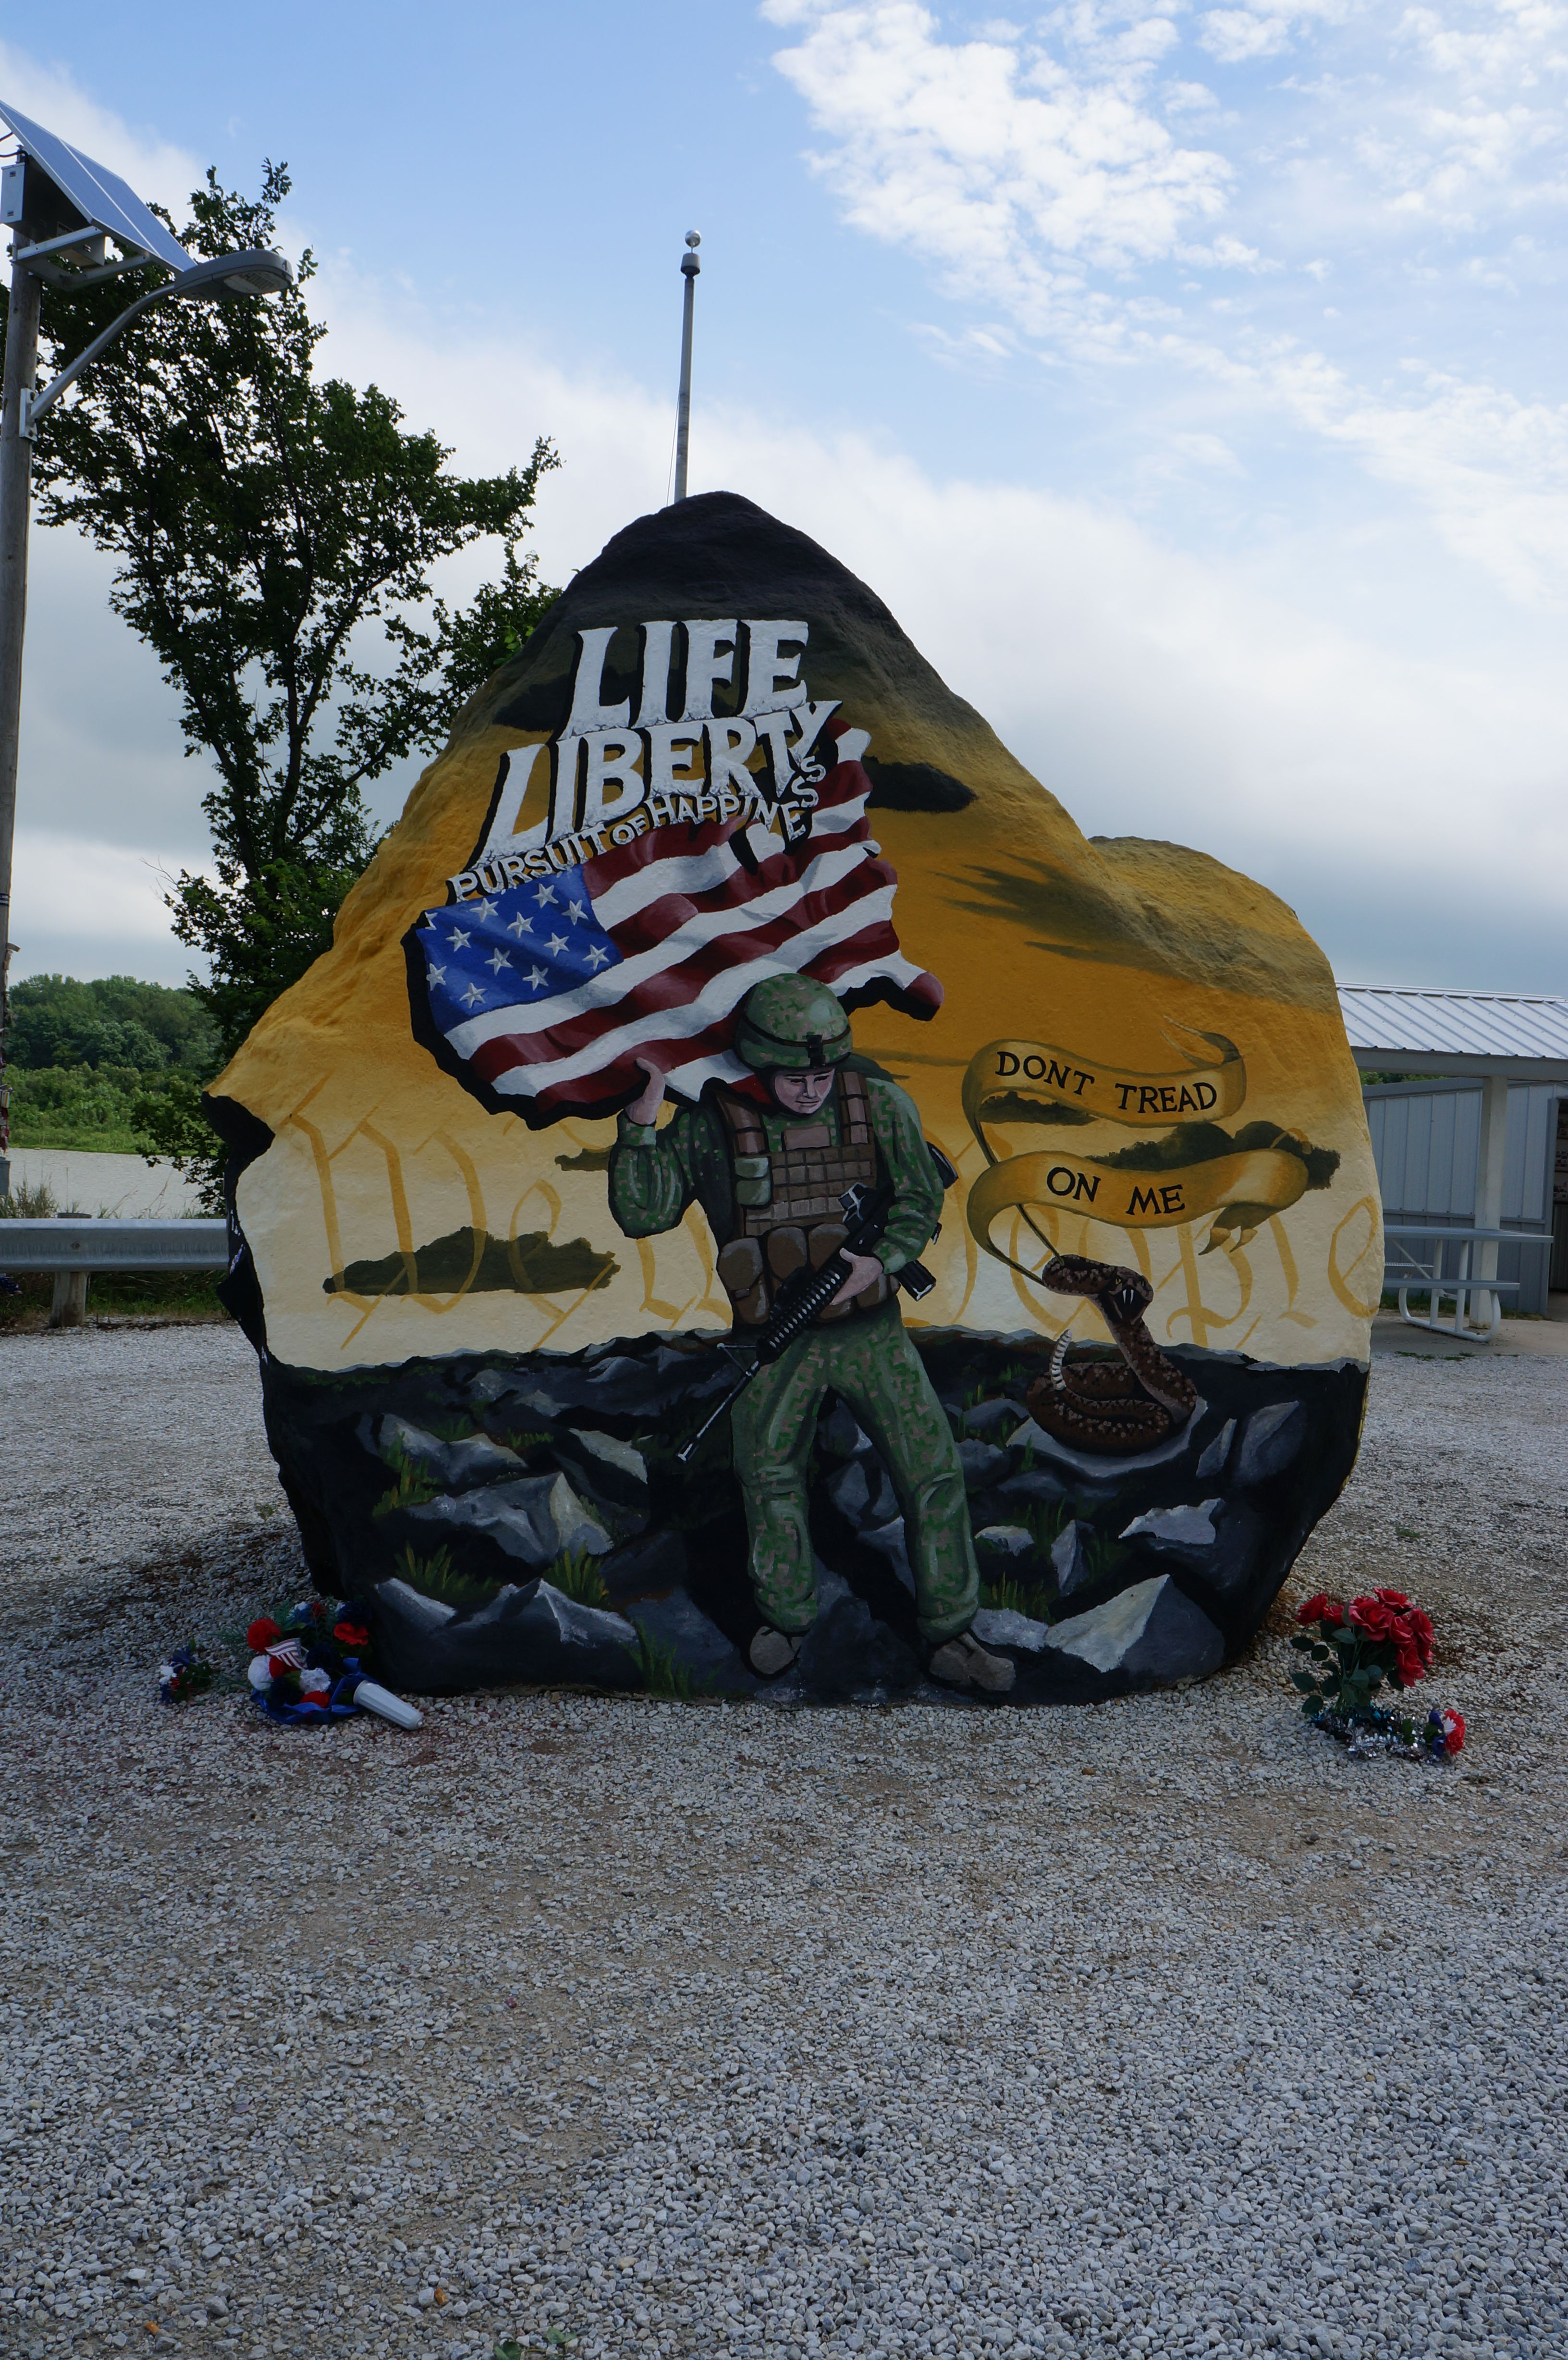 Freedom Rock Greenfield Iowa Repainted Every Year On Memorial Day With New Murals Iowa Mural Memorial Day